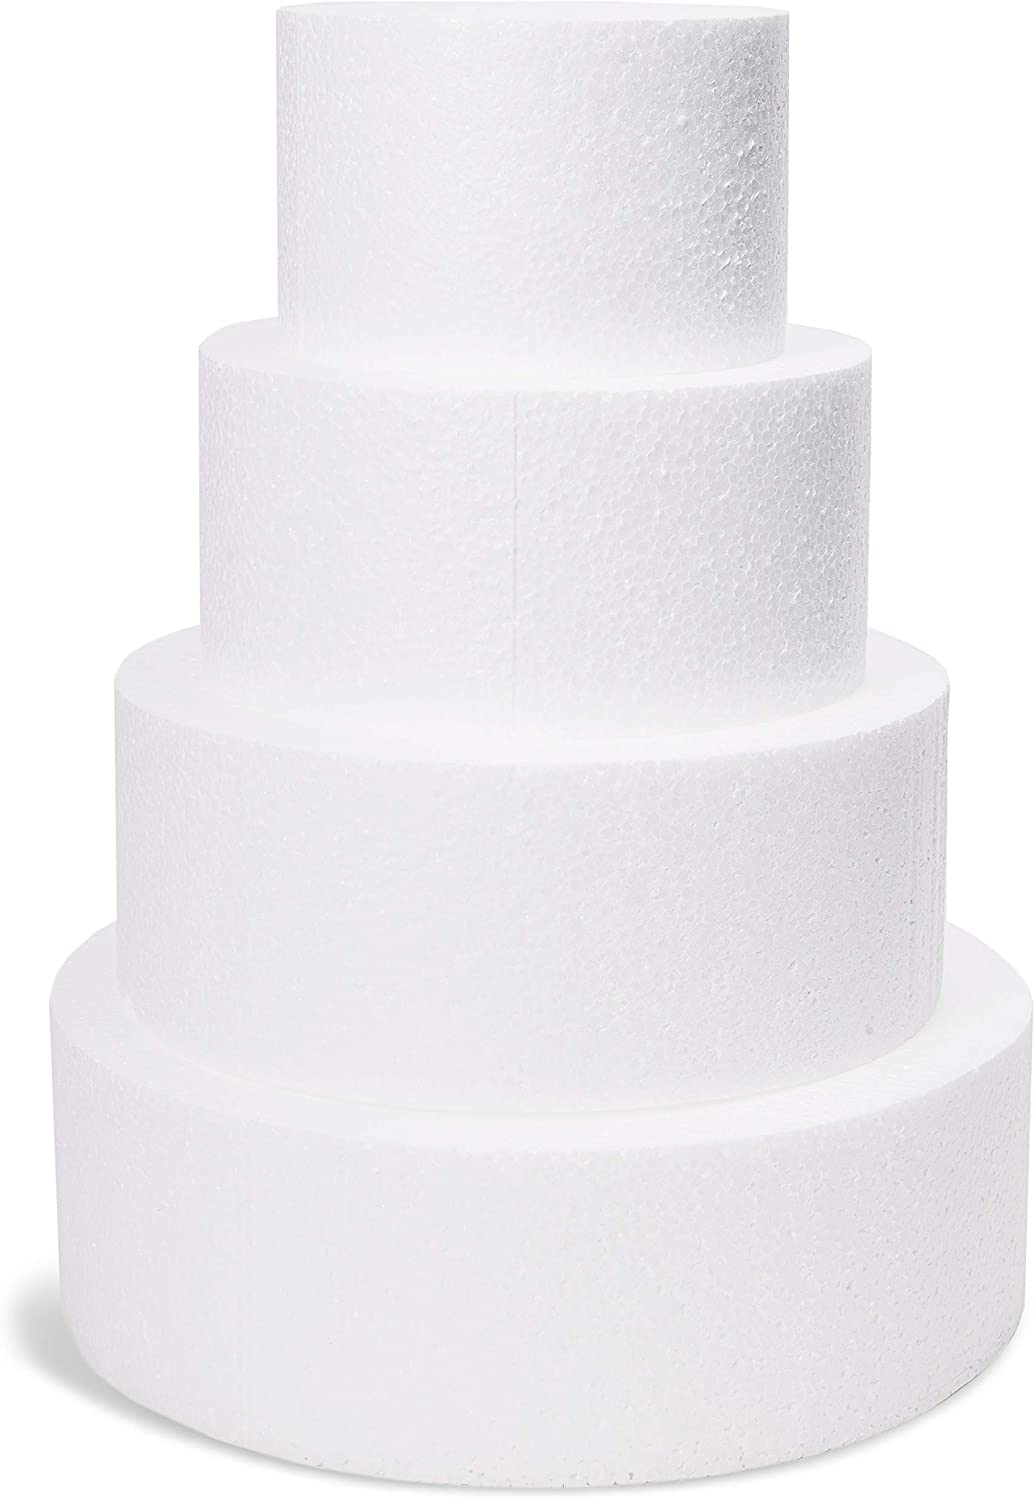 Juvale 4-Piece Round Foam Cake Dummy for Decorating and Wedding Display, 6, 8, 10, 12 Inches Diameter, Total 16 Inches Tall